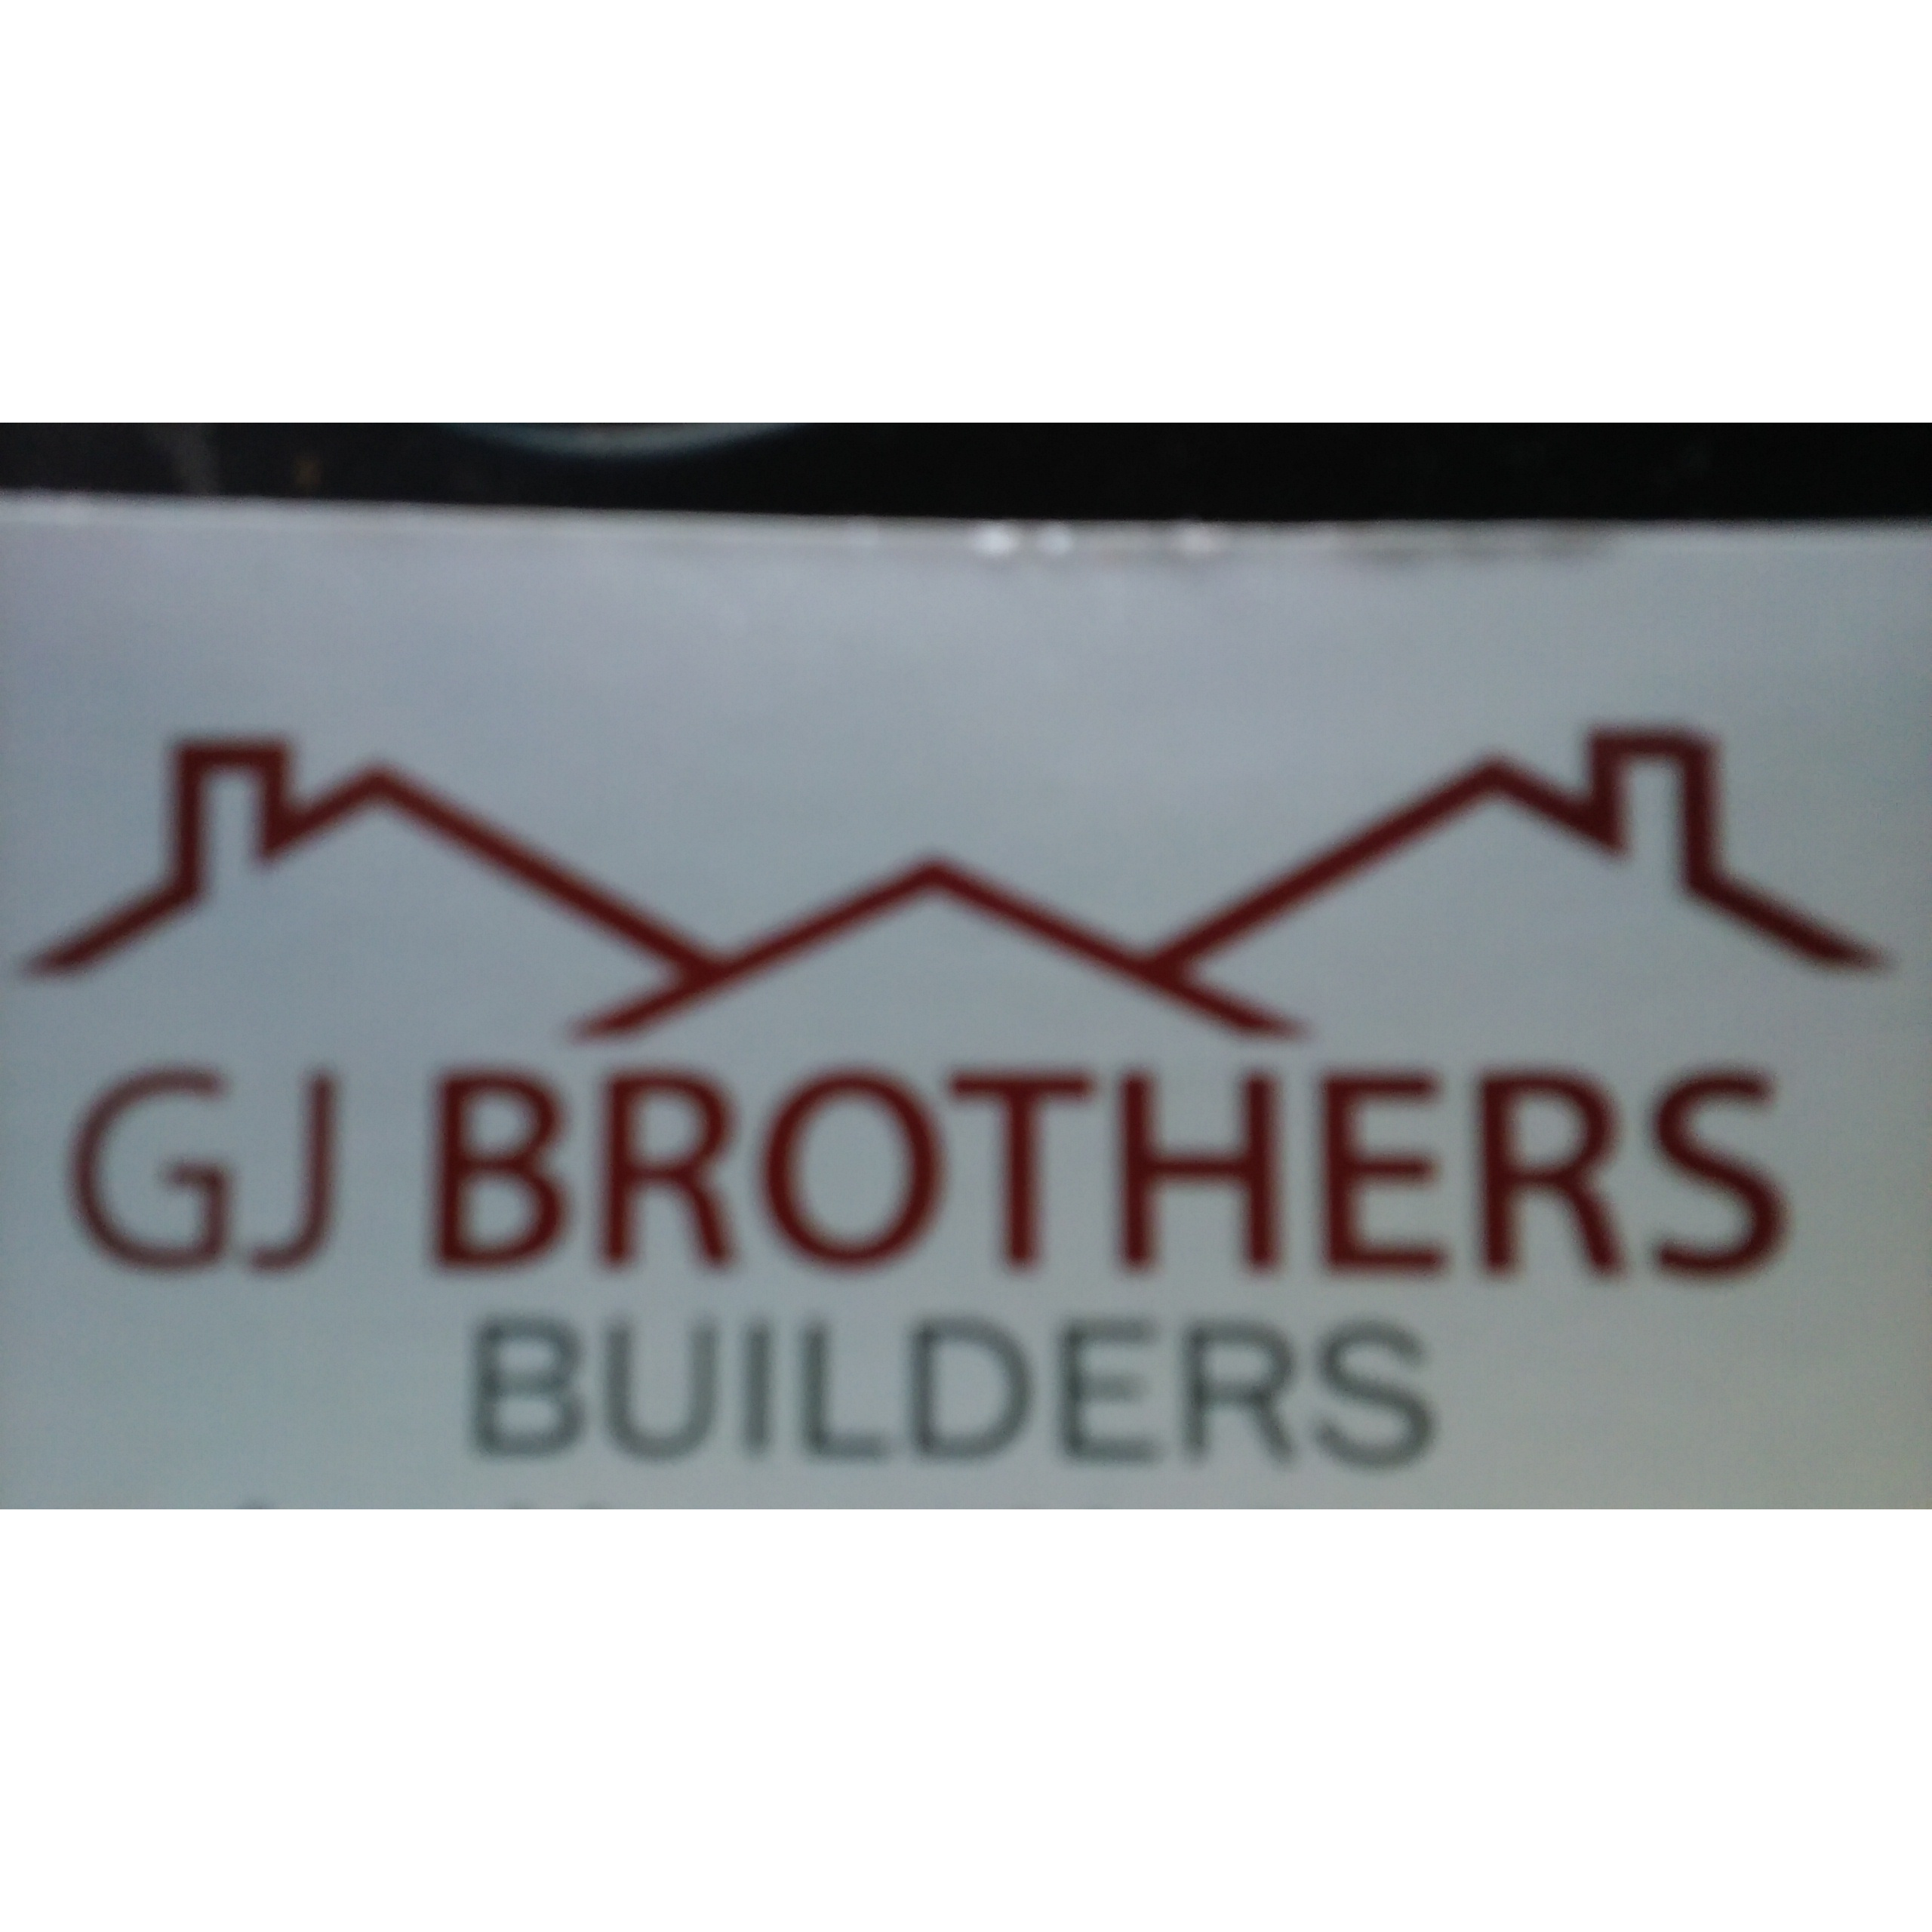 GJ Brothers Builders